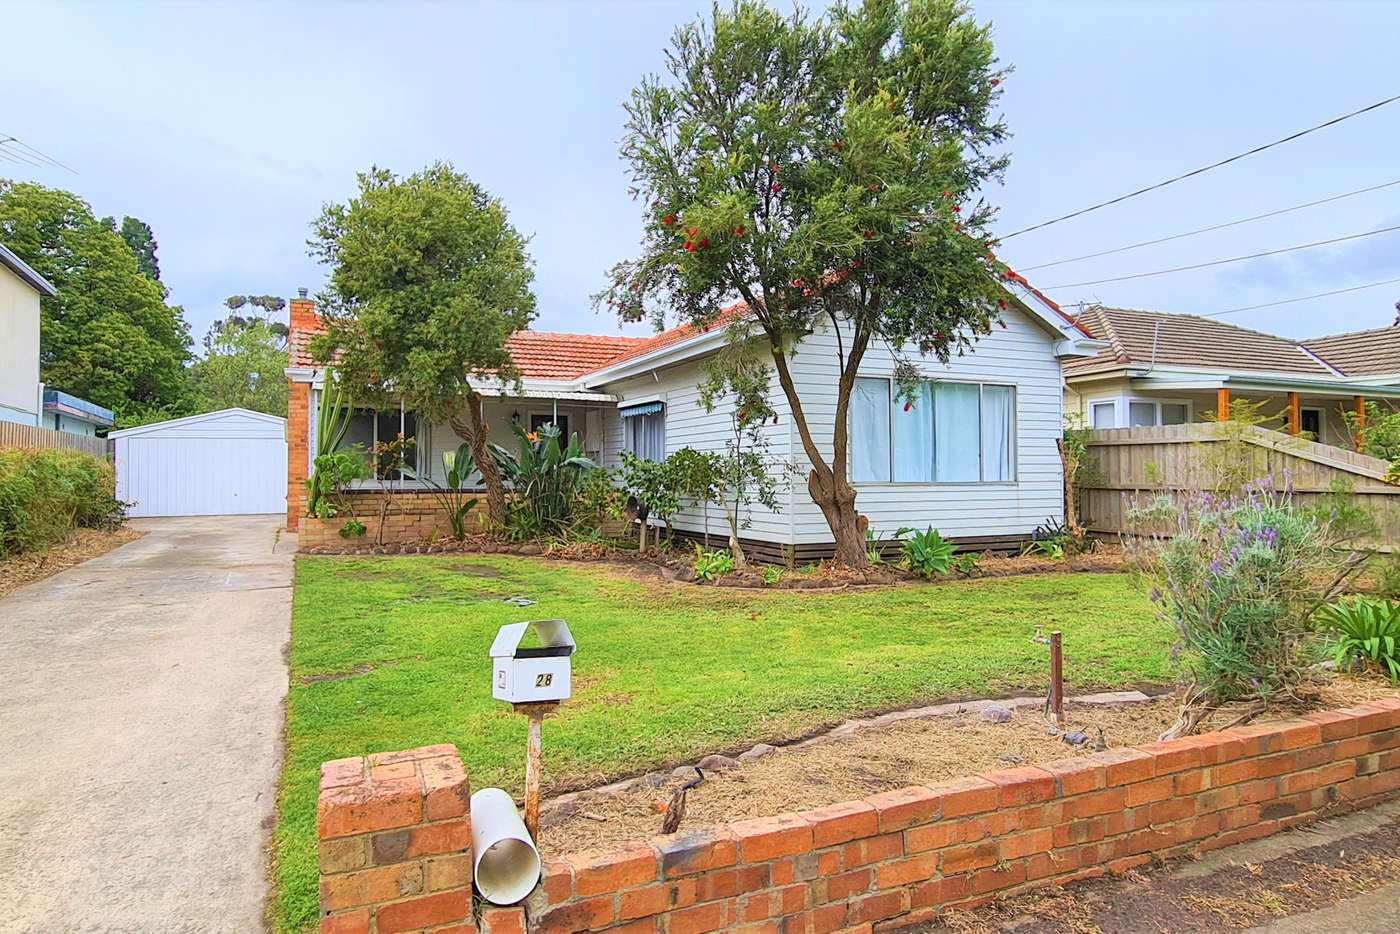 Main view of Homely house listing, 28 Mimosa Avenue, Oakleigh South VIC 3167